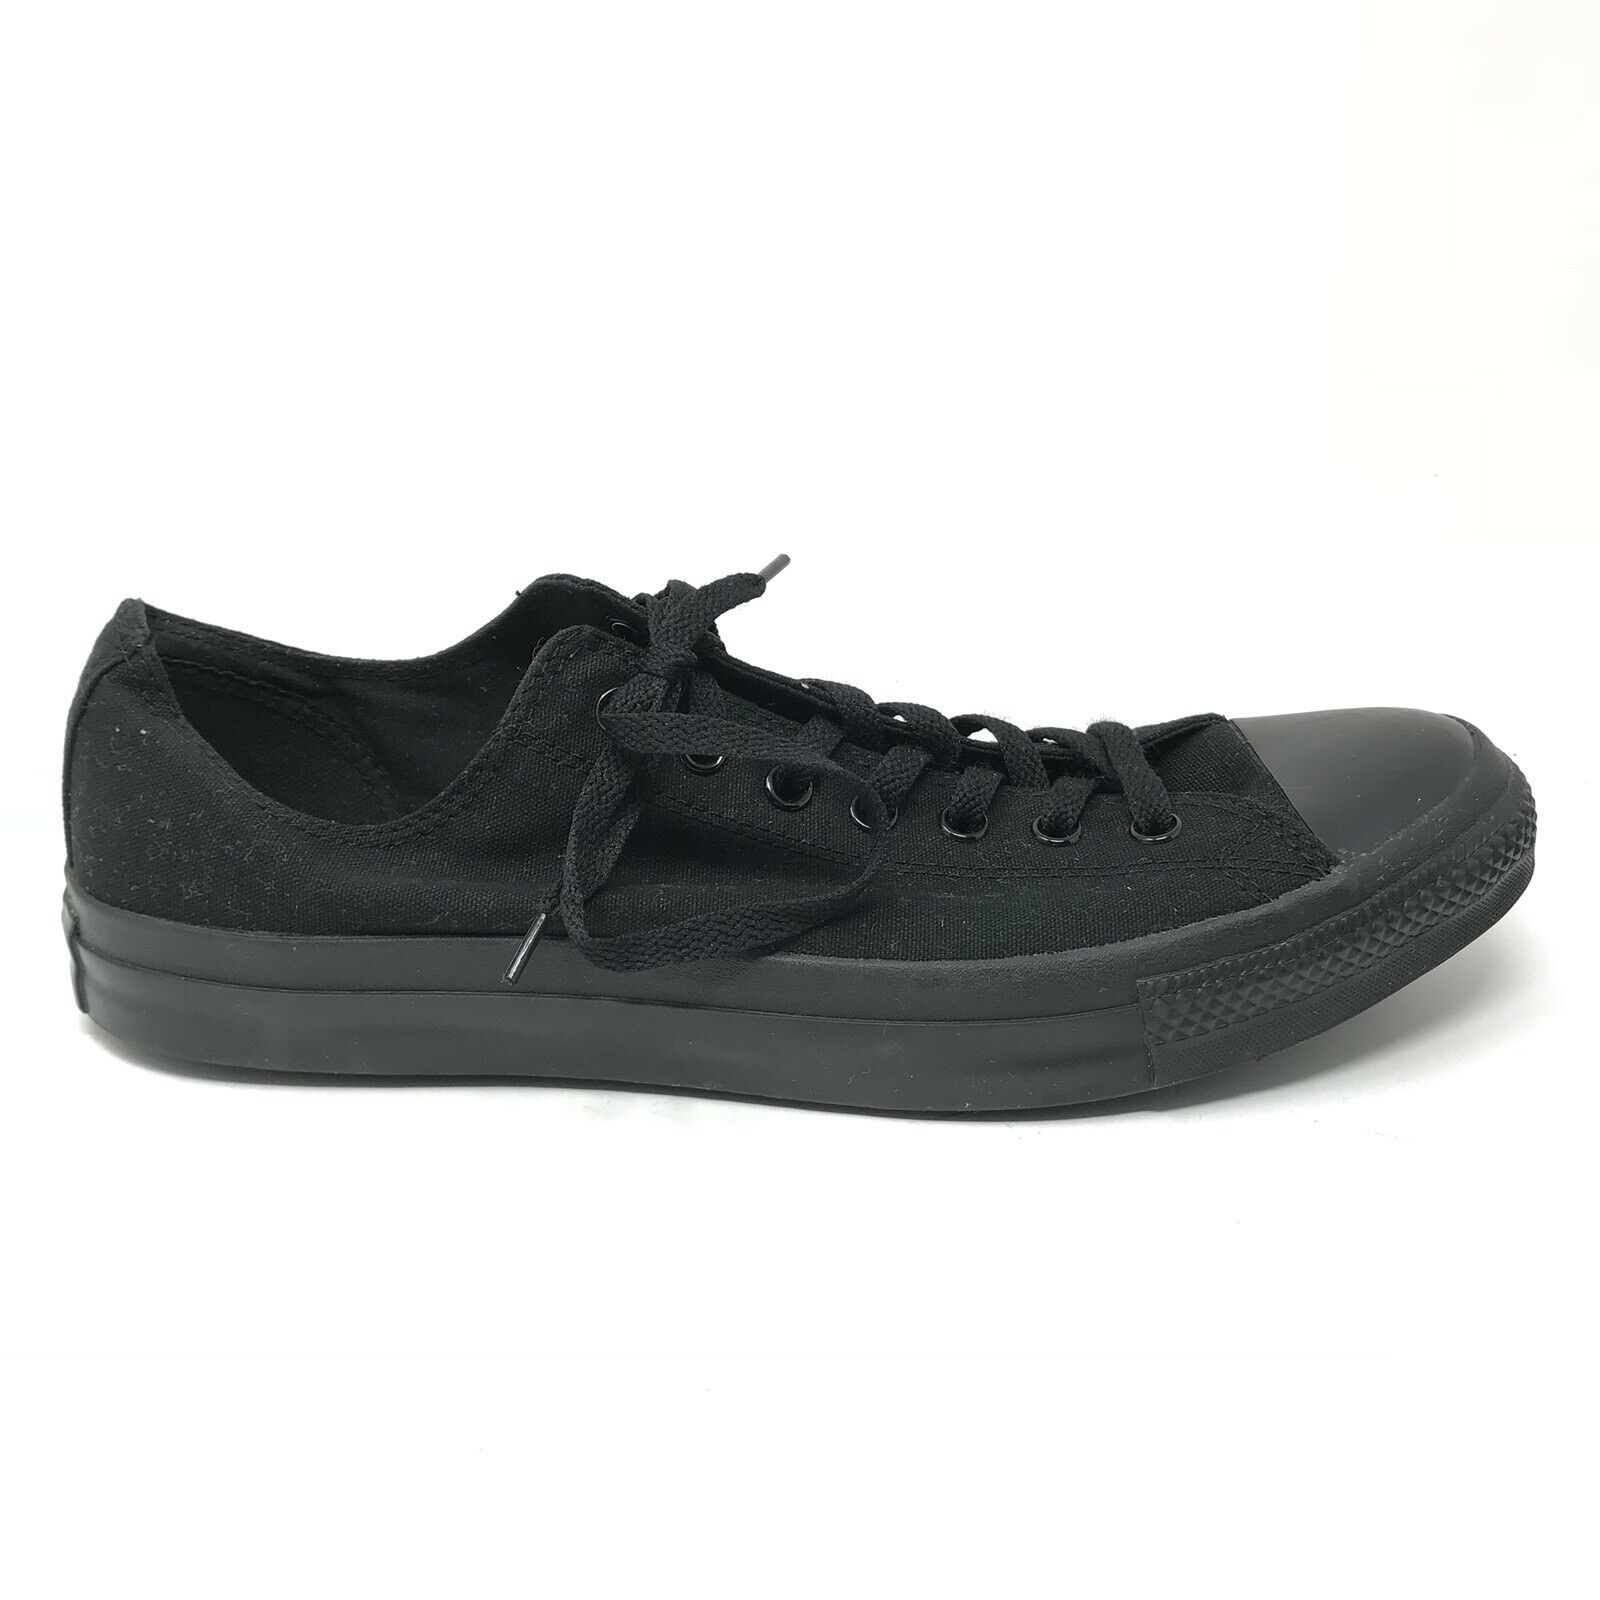 Converse Mens Size 13 Chuck Taylor All Star Low Top Sneakers Black On Black